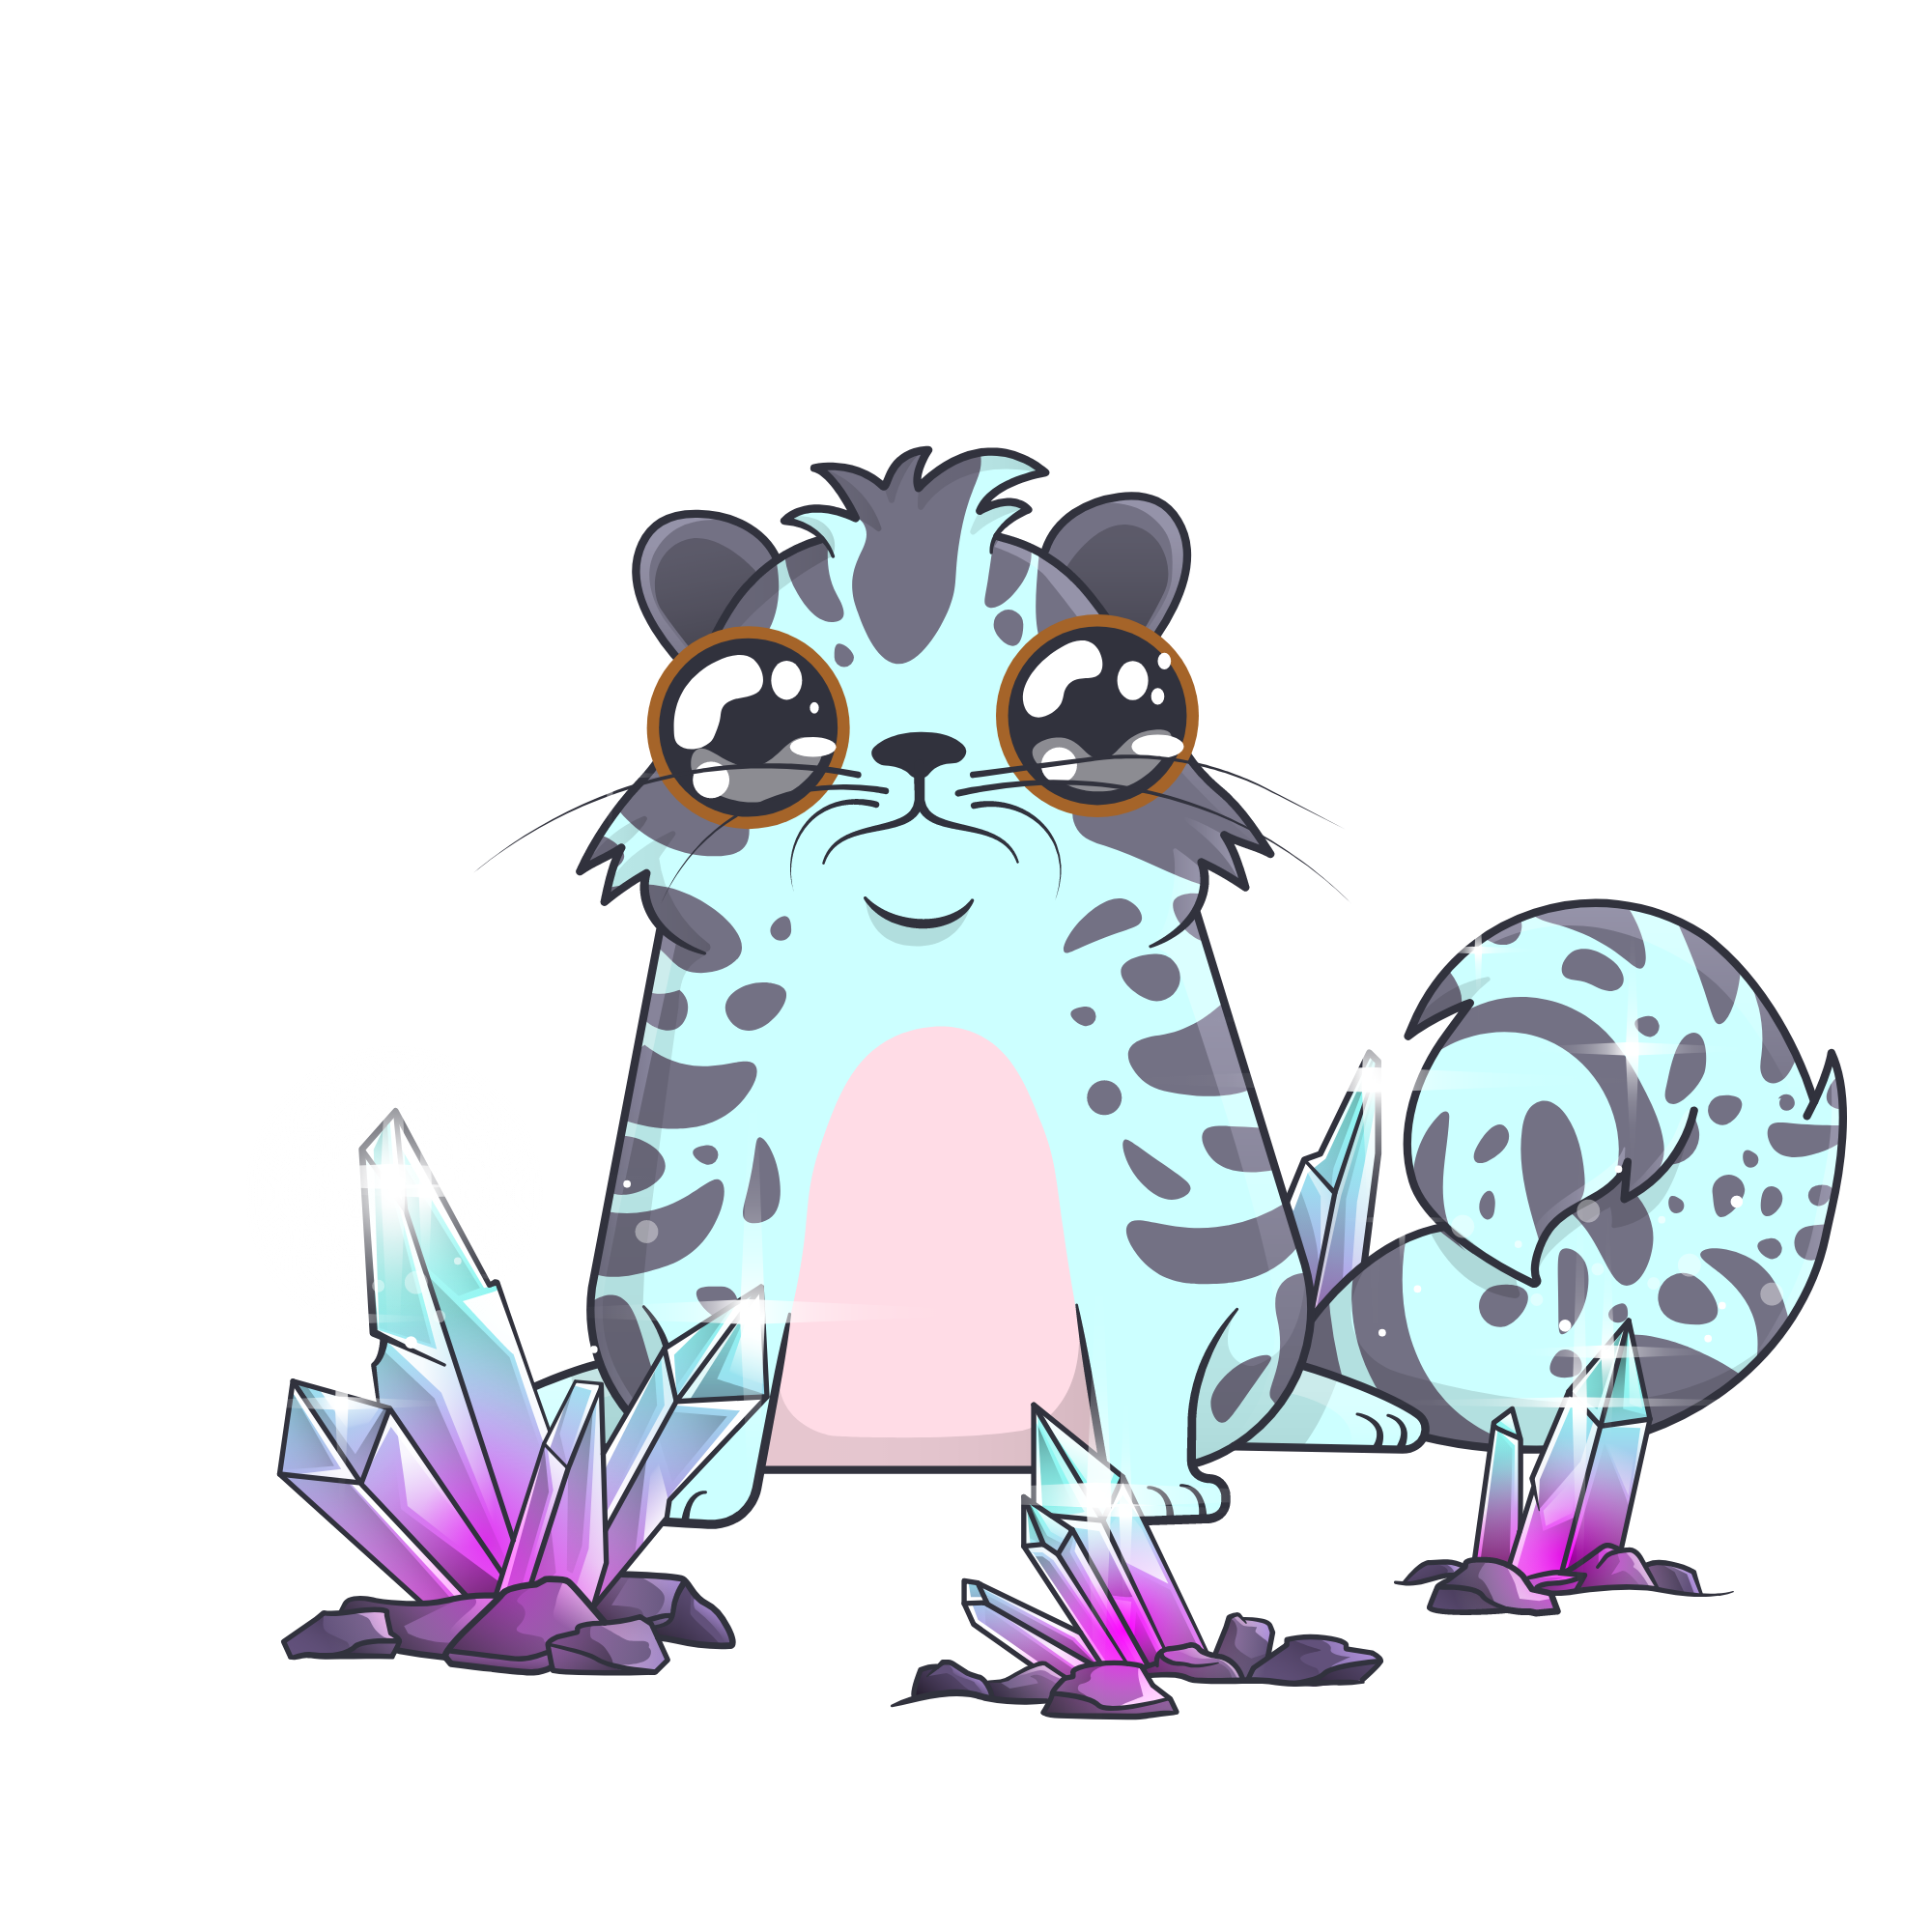 cryptokitty #1951700